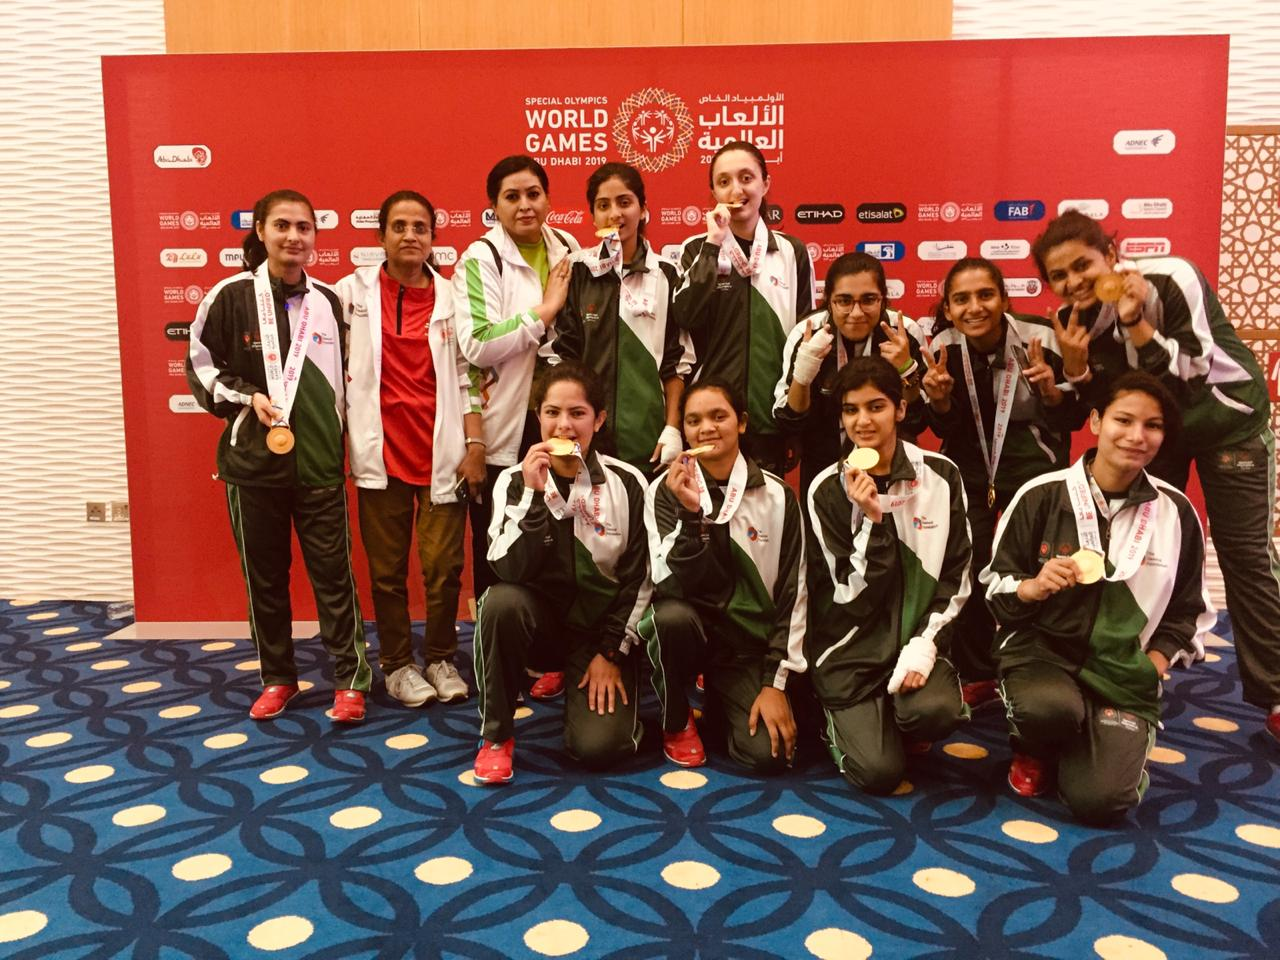 The Dawood Foundation sponsors Unified Female Basketball team at Special Olympics World Games – Abu Dhabi 2019. The team won Gold Medal! Unified team had differently-abled girls from across Pakistan who were supported by athletic girls from Dawood Public School.